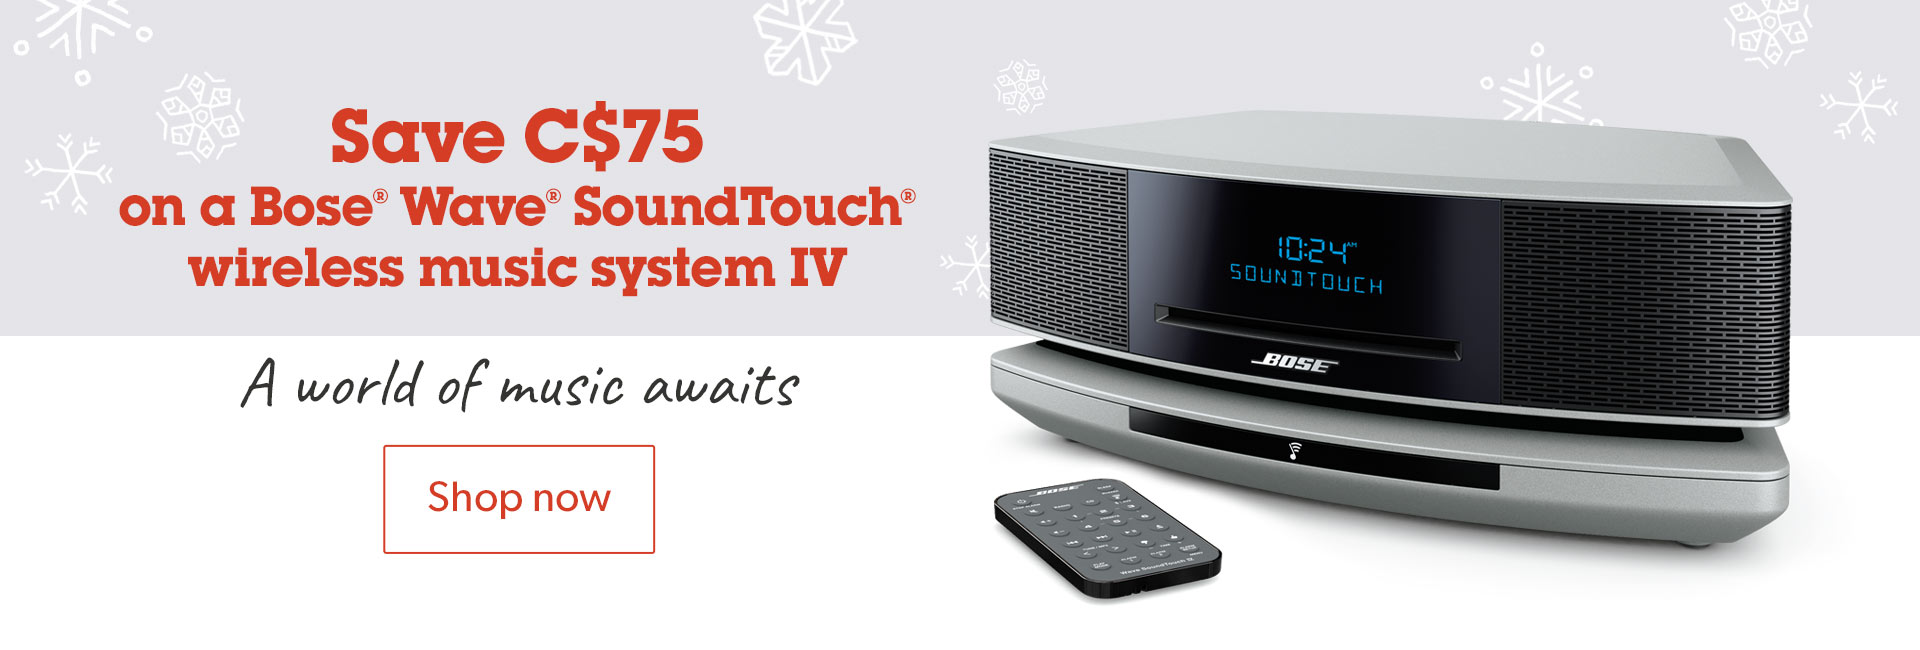 Save C$75 on a Bose® Wave® SoundTouch® wireless music system IV